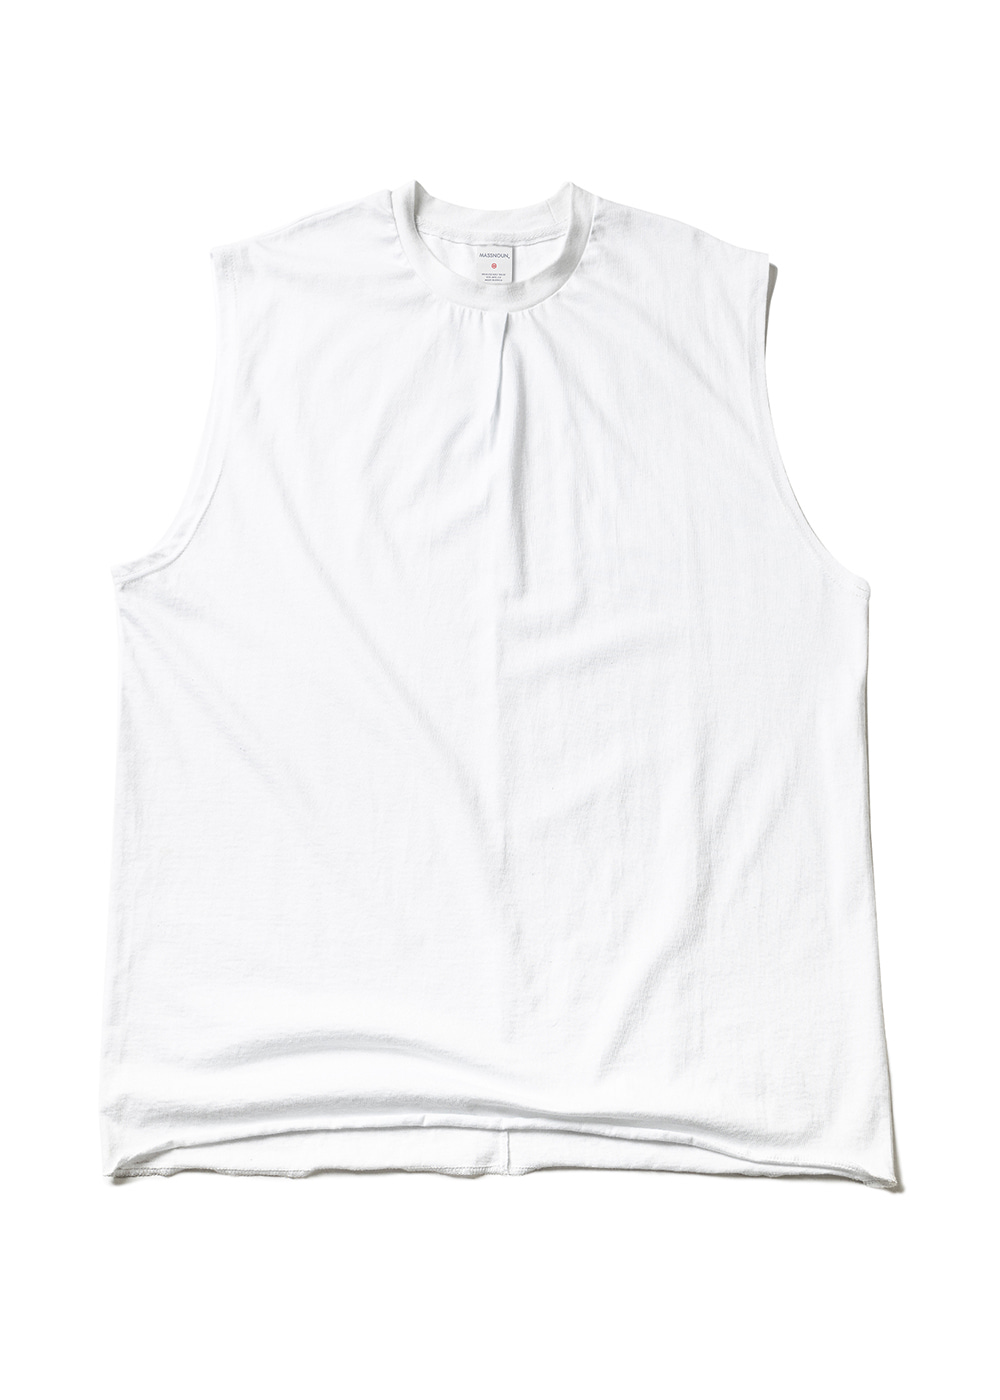 RESTRUCTURE OVERSIZED SLEEVELESS MUZSV002-WT